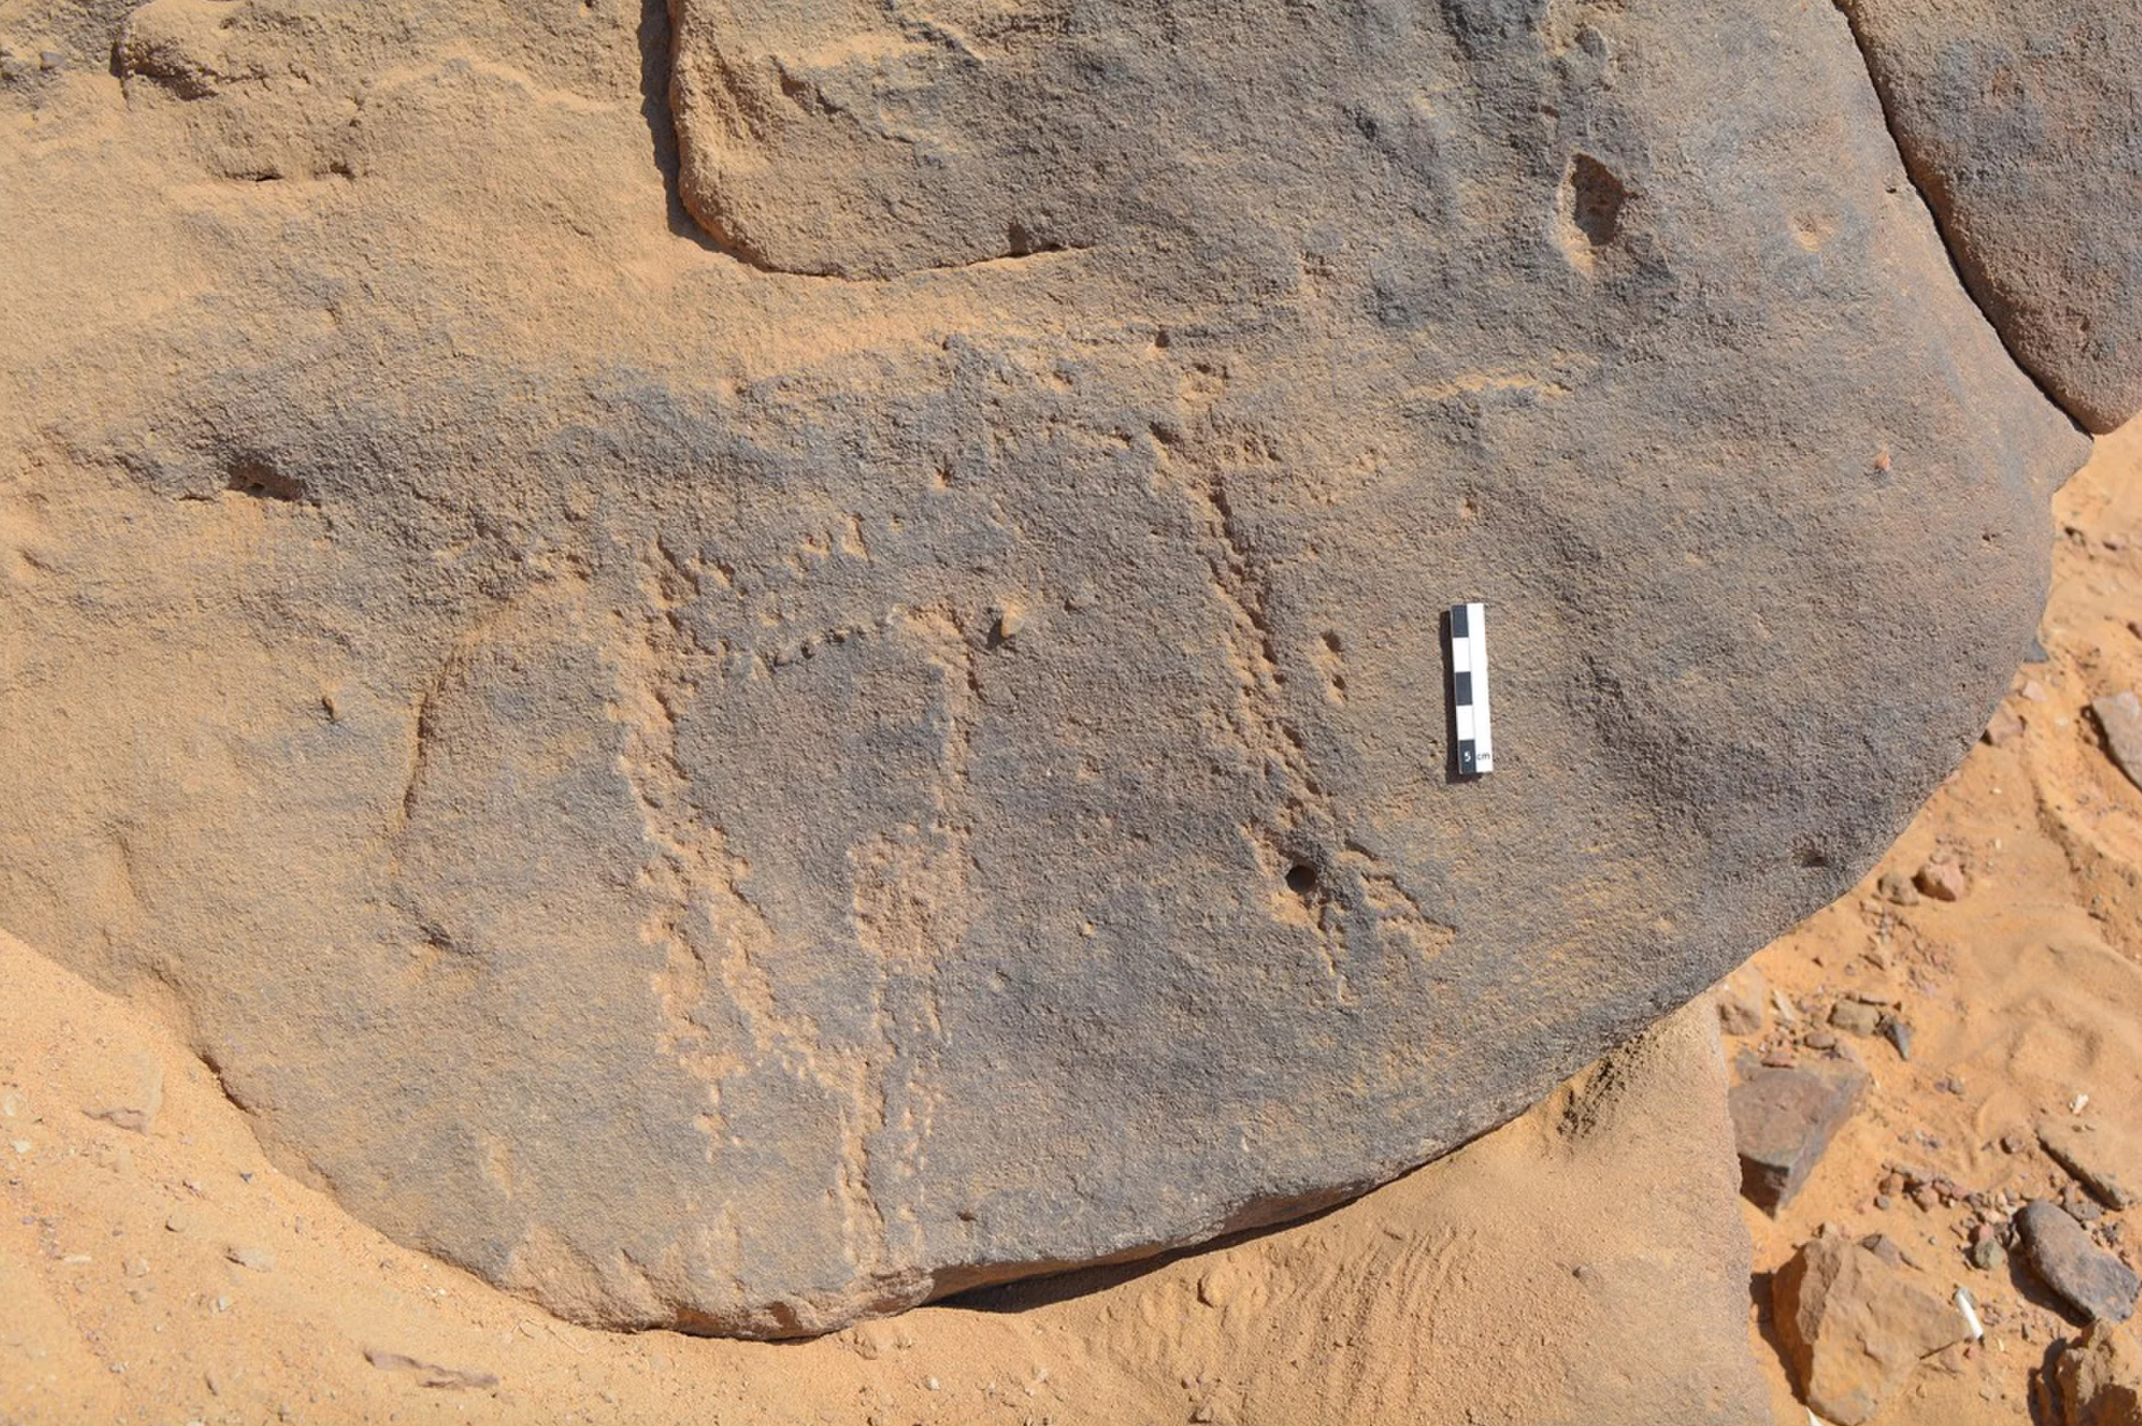 Ancient rock carvings depicting masked people discovered